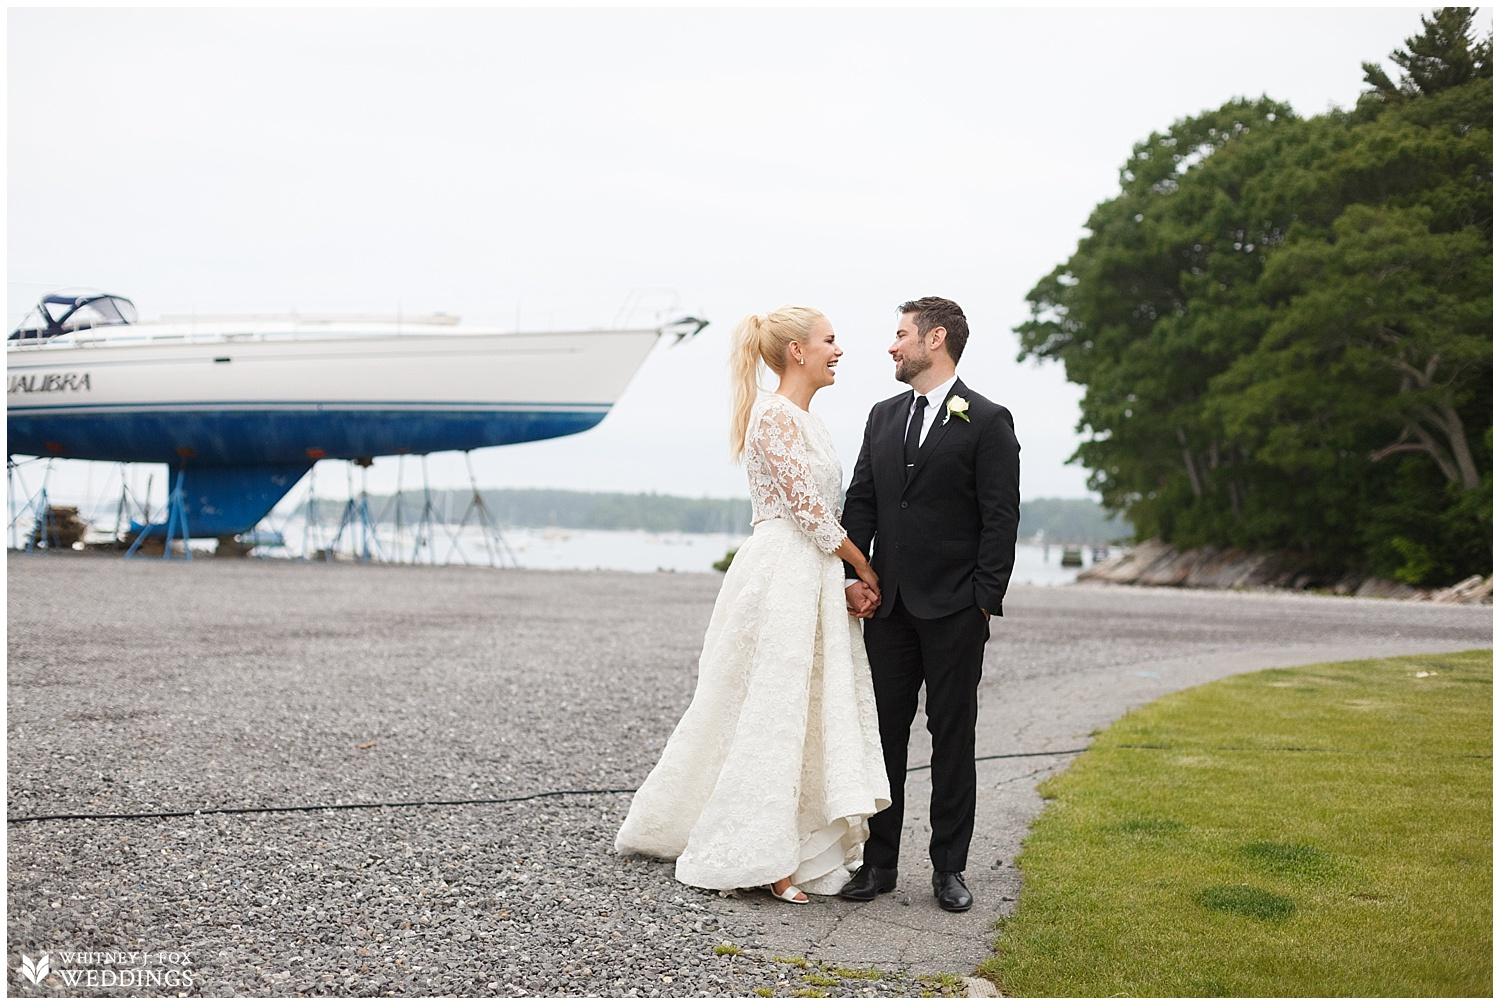 formal_seaside_summer_wedding_dockside_grill_falmouth_maine_photographer_whitney_j_fox_weddings_76.JPG